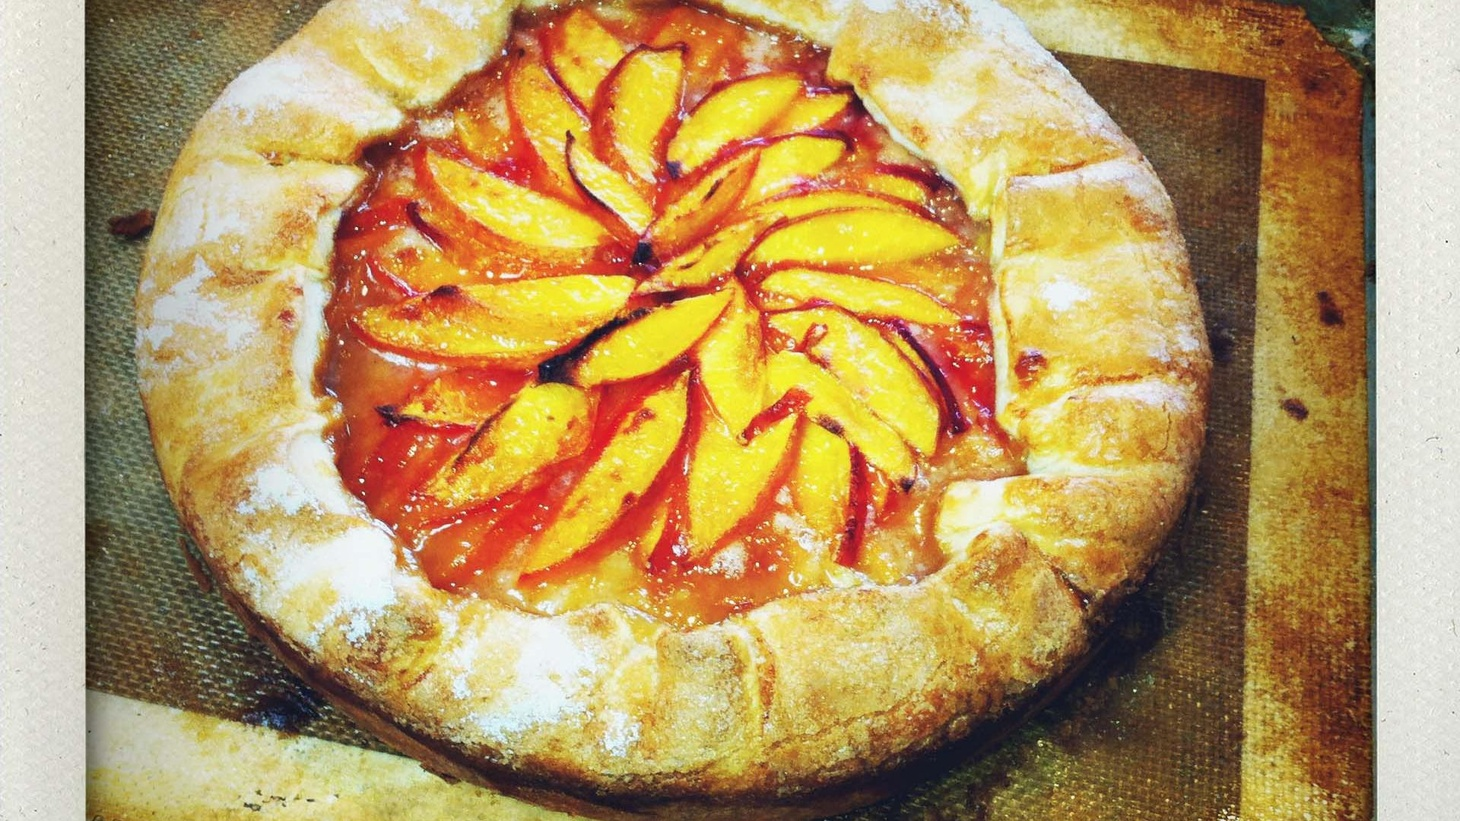 Zoe Nathan, the chef/owner of Huckleberry in Santa Monica, shares her recipe for a Peach Crostata, an Italian-style pie.